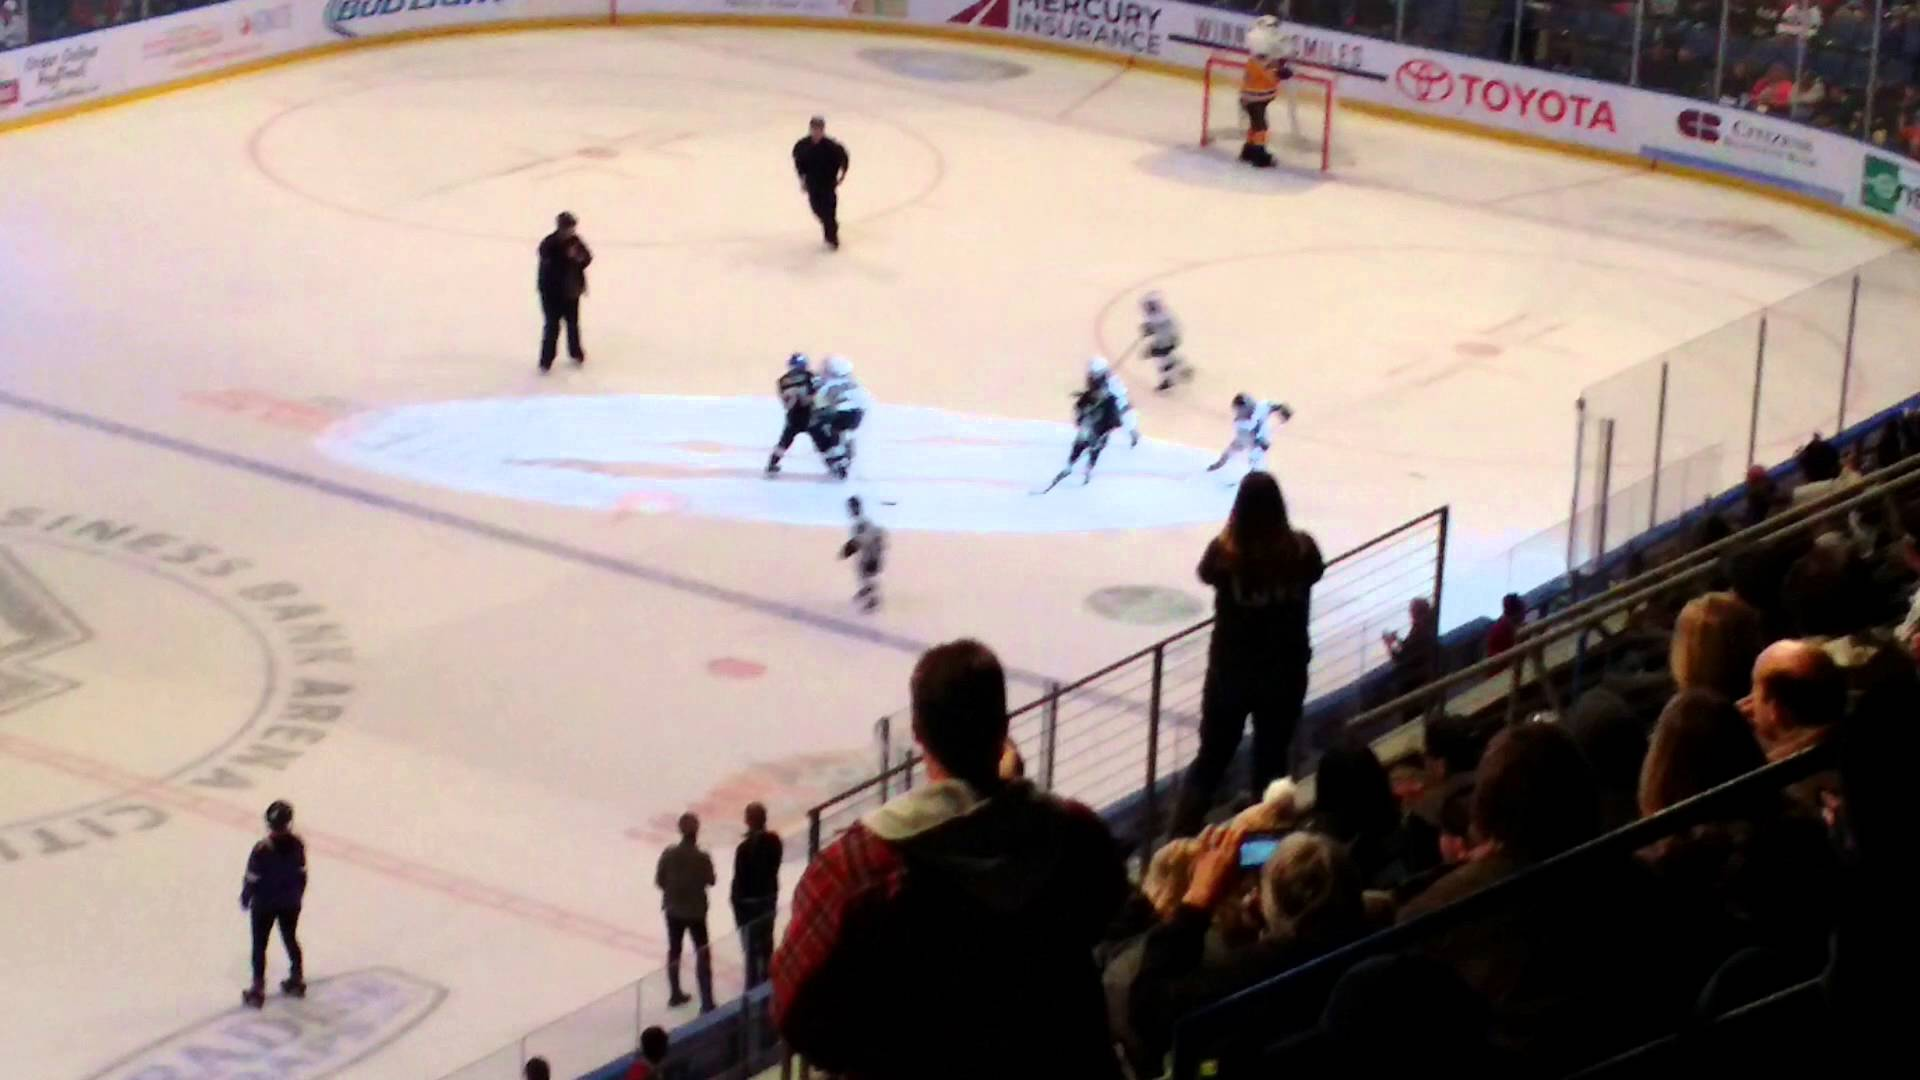 Hockey youngsters drop the gloves for a line brawl